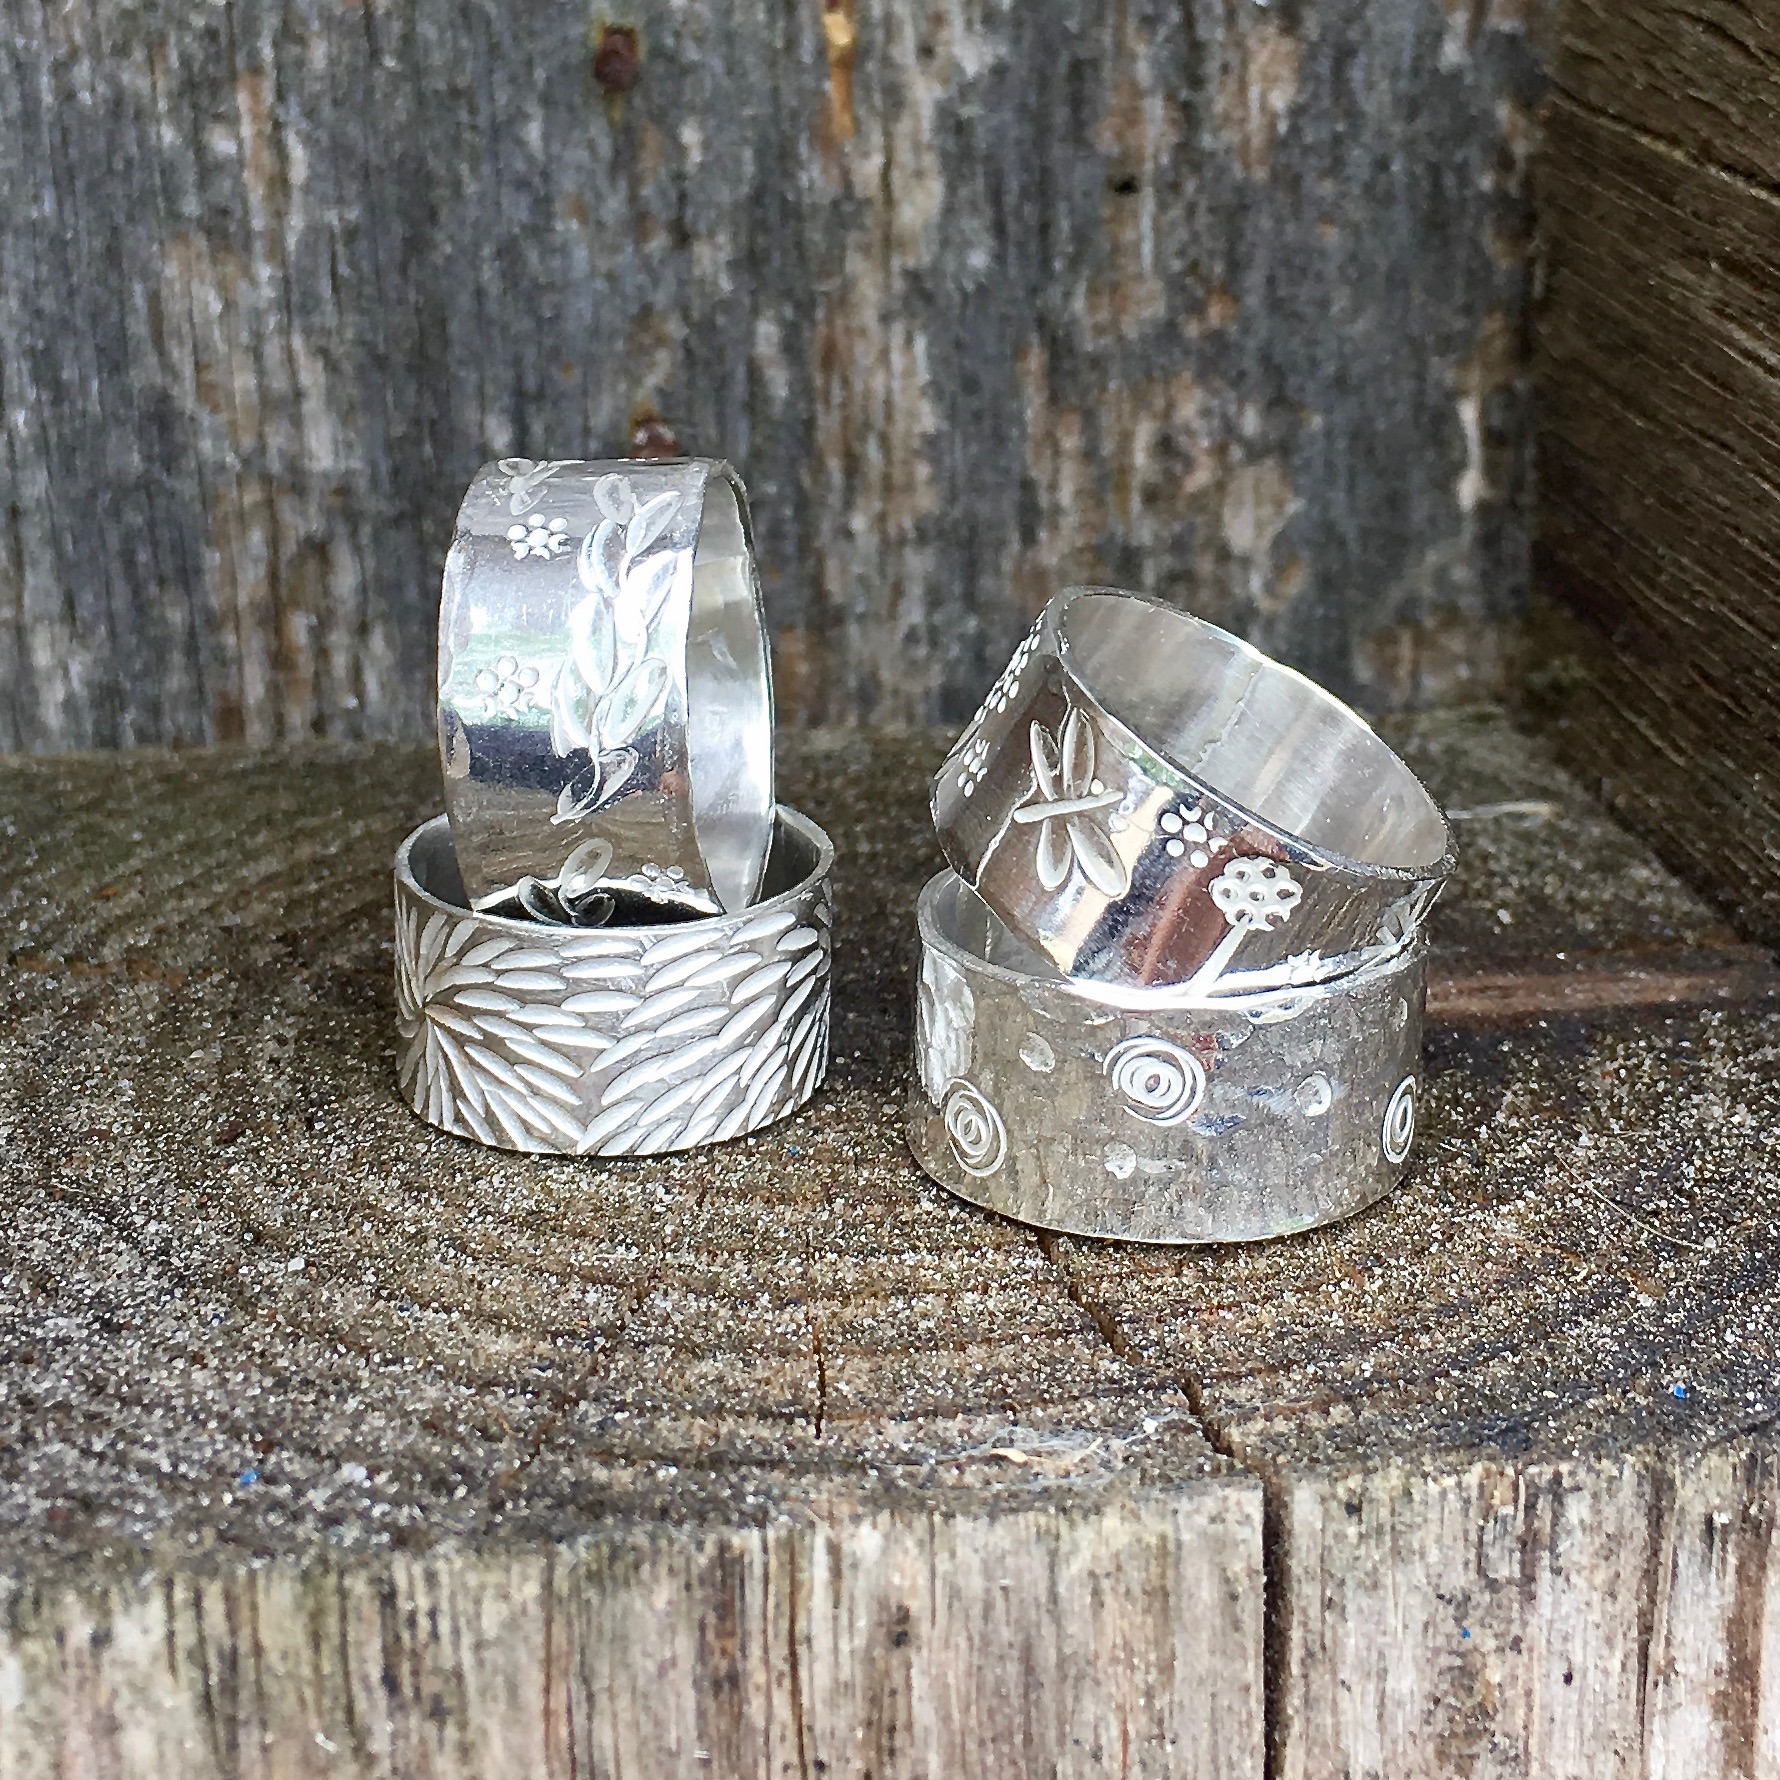 Rings workshop